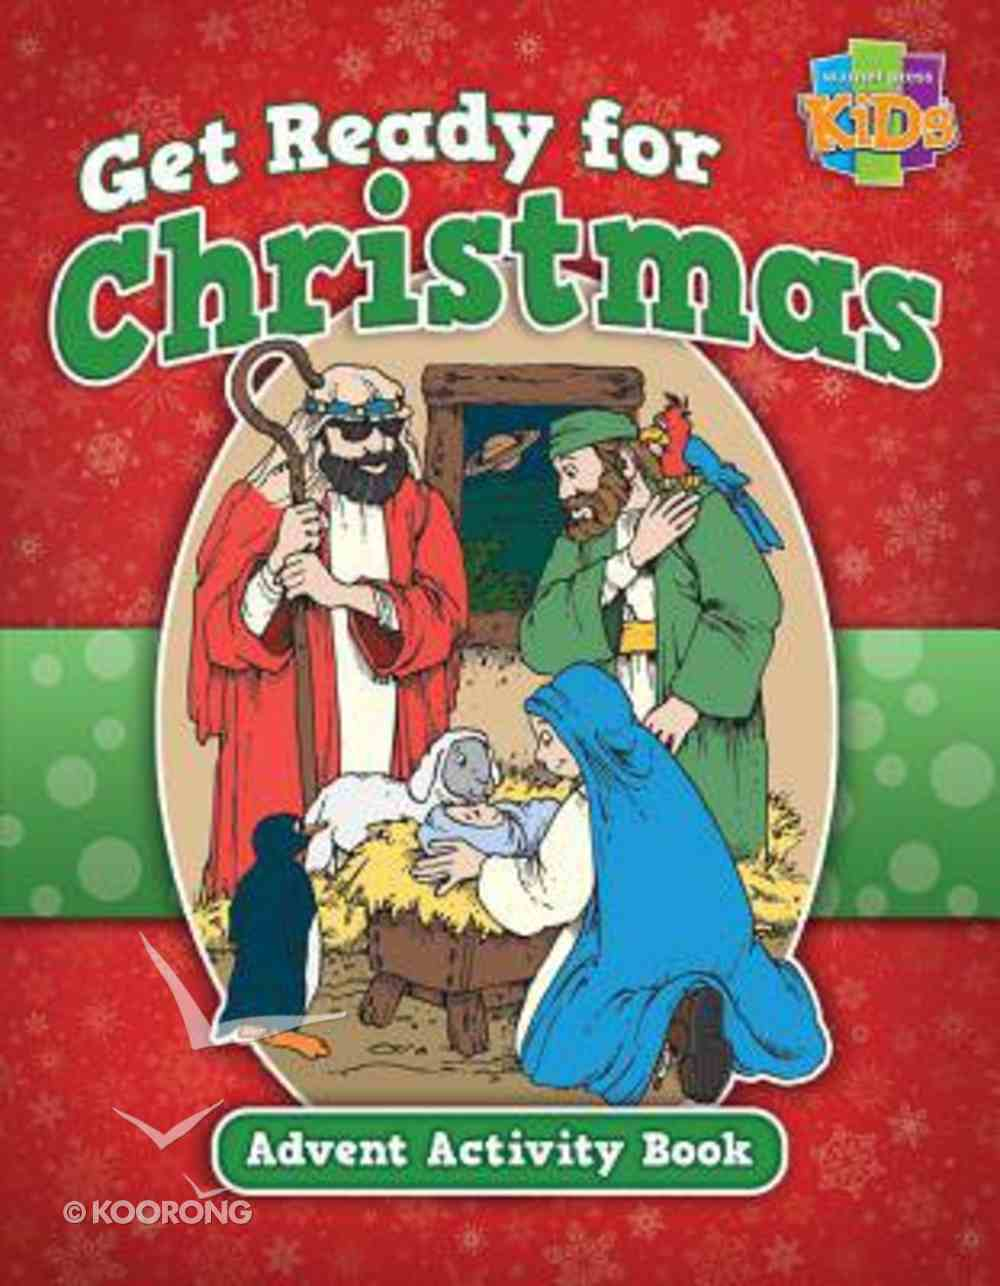 Activity Book: Get Ready For Christmas! Advent Activity Book (Niv/nirv) Paperback